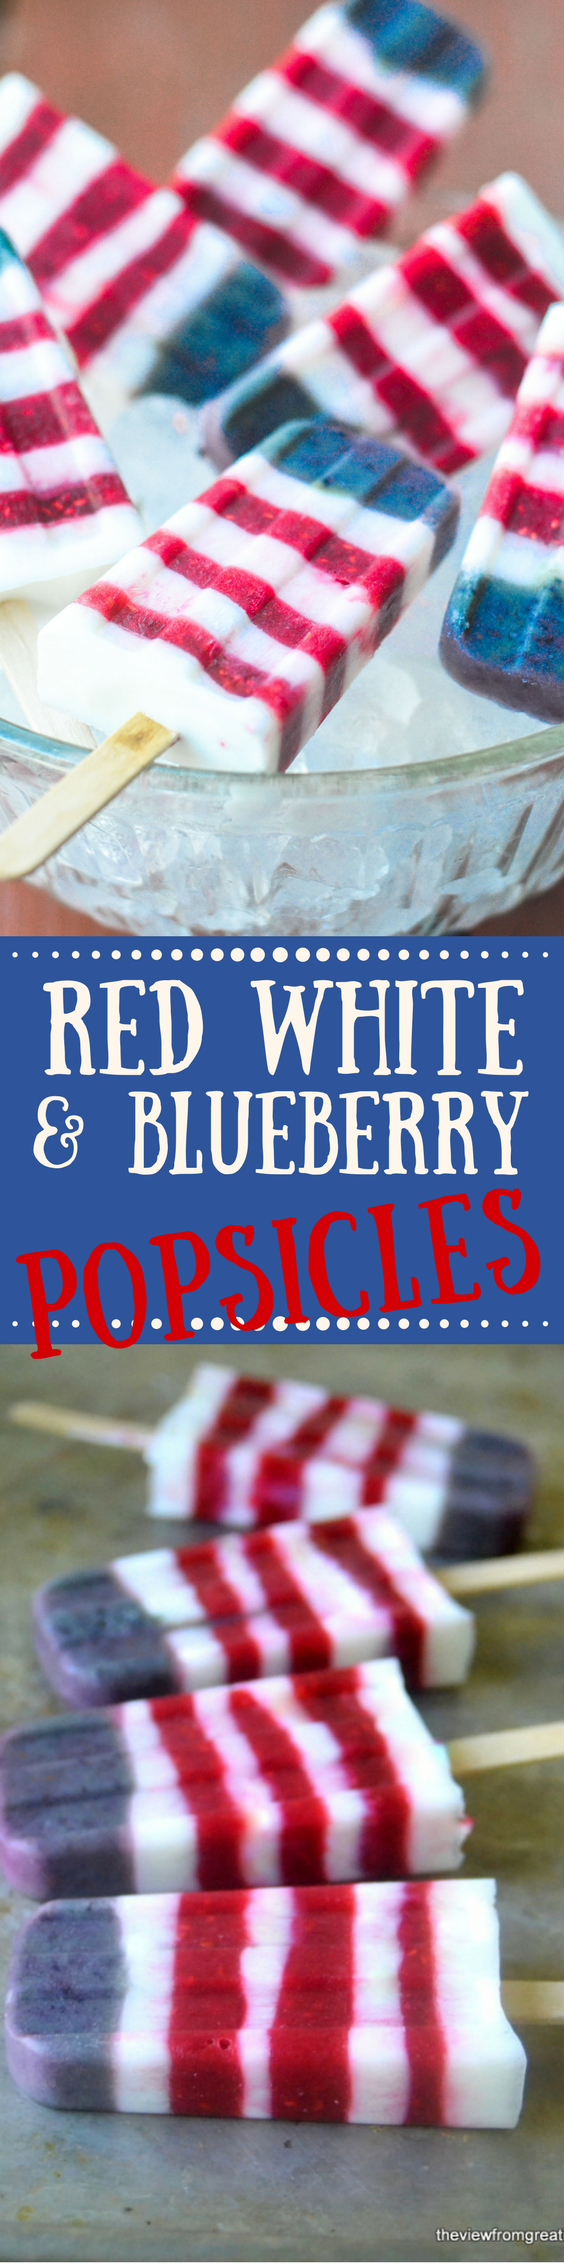 Show your colors this summer with these healthy Red White and Blueberry Yogurt Popsicles! Kids of all ages love these berry-licious frozen treats! #popsicles #redwhiteandblue #memorialday #4thofjuly #fourthofjuly #diypopsicles #summer #summerdessert #dessert #stripedpopsicles #yogurtpopicles #healthydessert